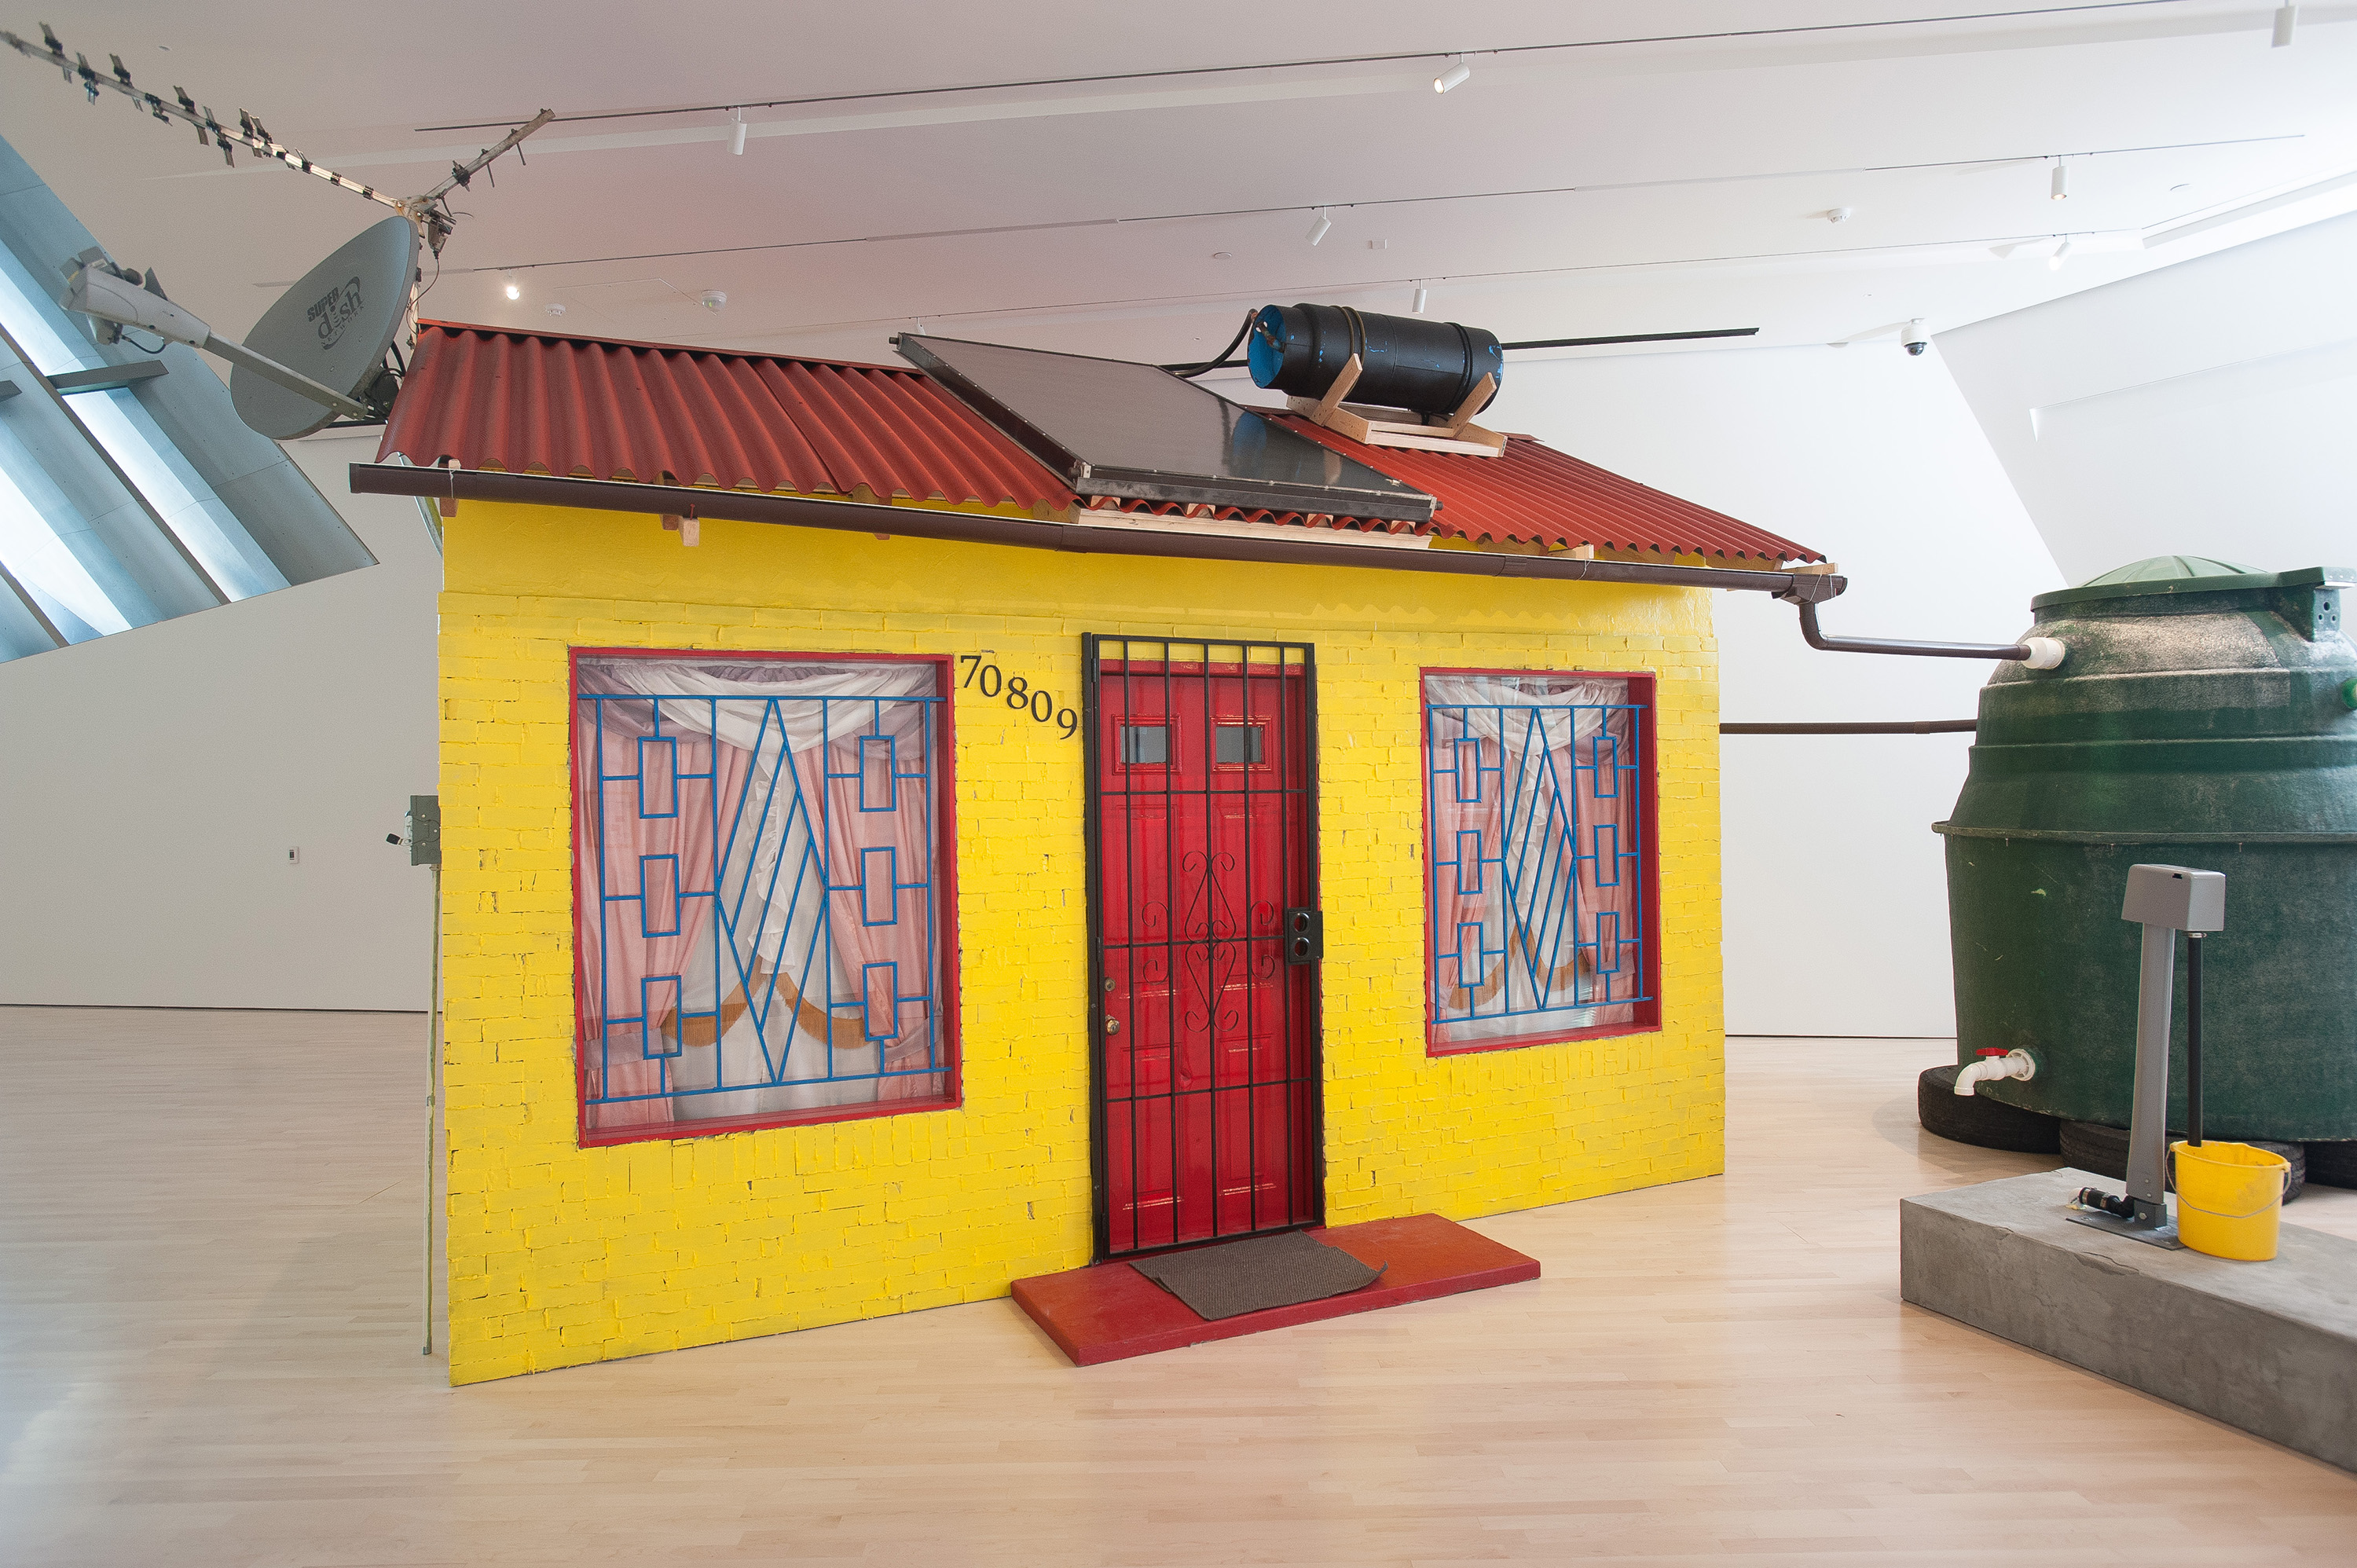 Marjetica Potrč, Soweto House with Prepaid Water Meter, 2012, installation view at the Eli and Edythe Broad Art Museum at Michigan State University, 2012. Courtesy the artist and Galerie Nordenhake, Berlin/Stockholm. Photo: Trumpie Photography